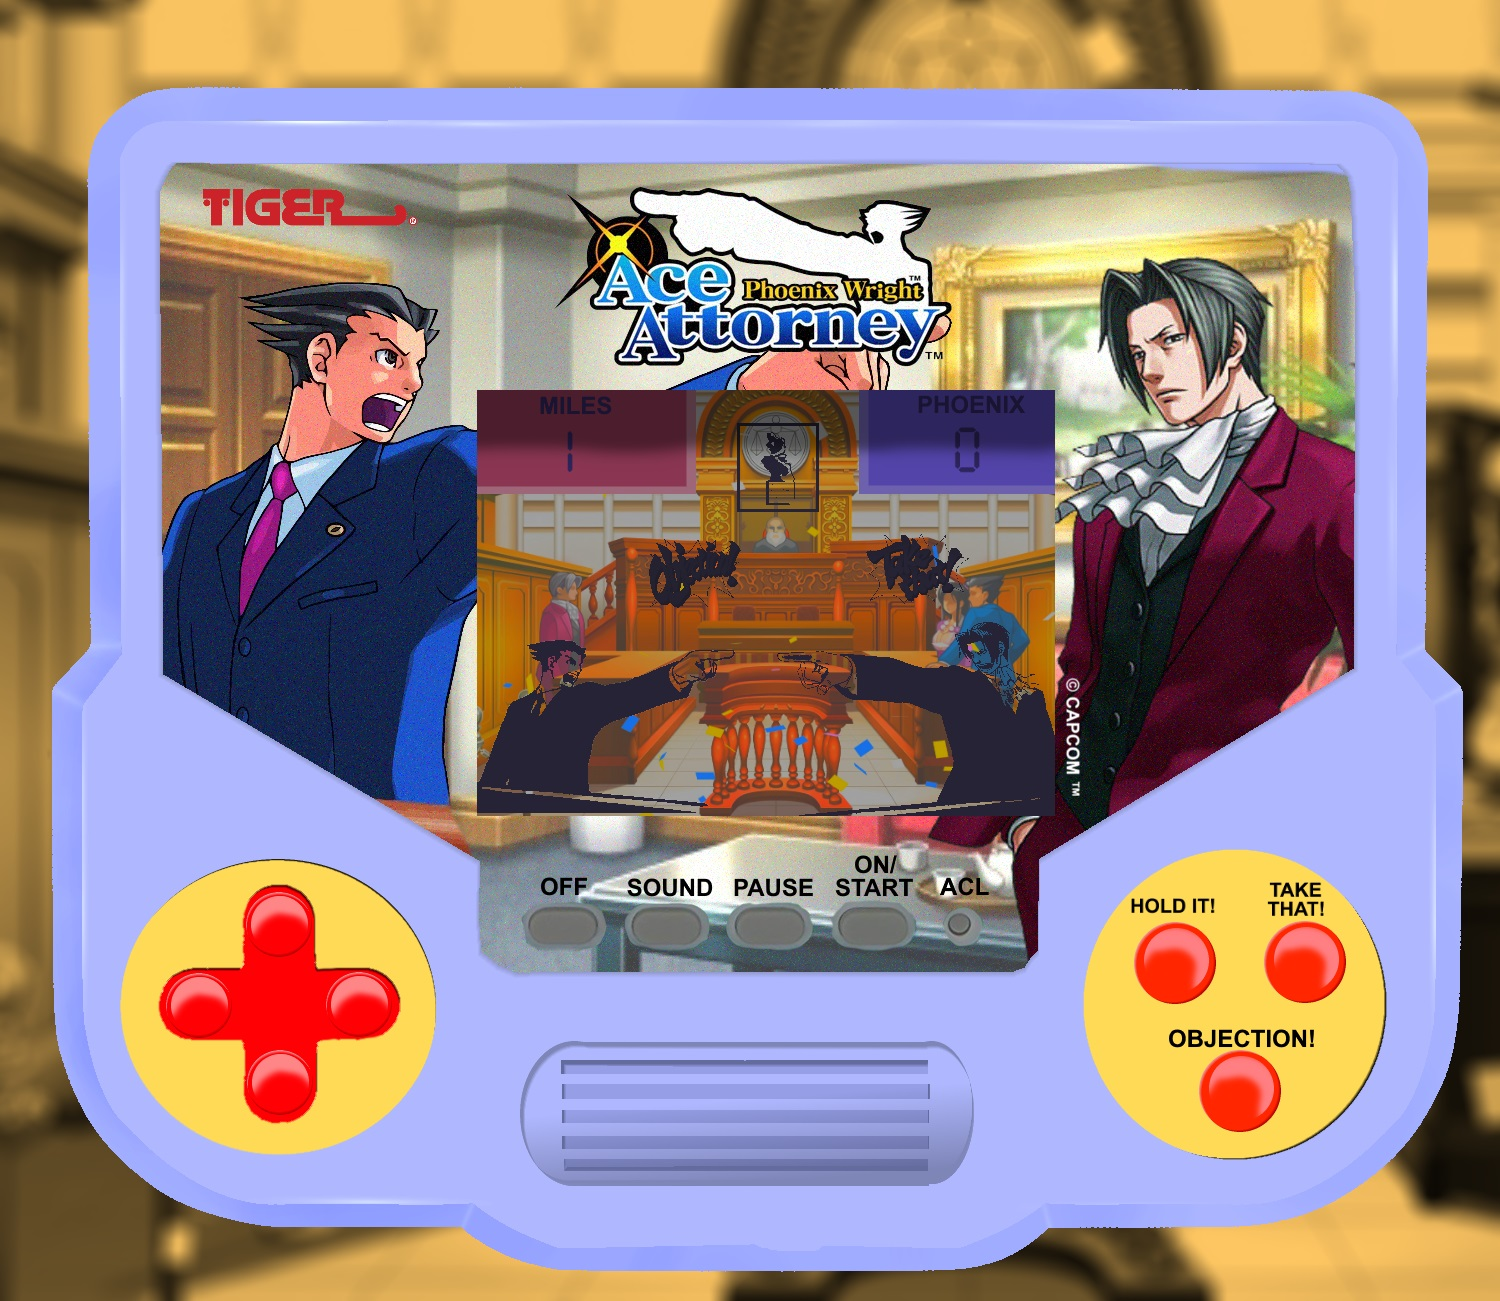 PHOENIX WRIGHT ACE ATTORNEY BY TIGER ELECTRONICS.jpg